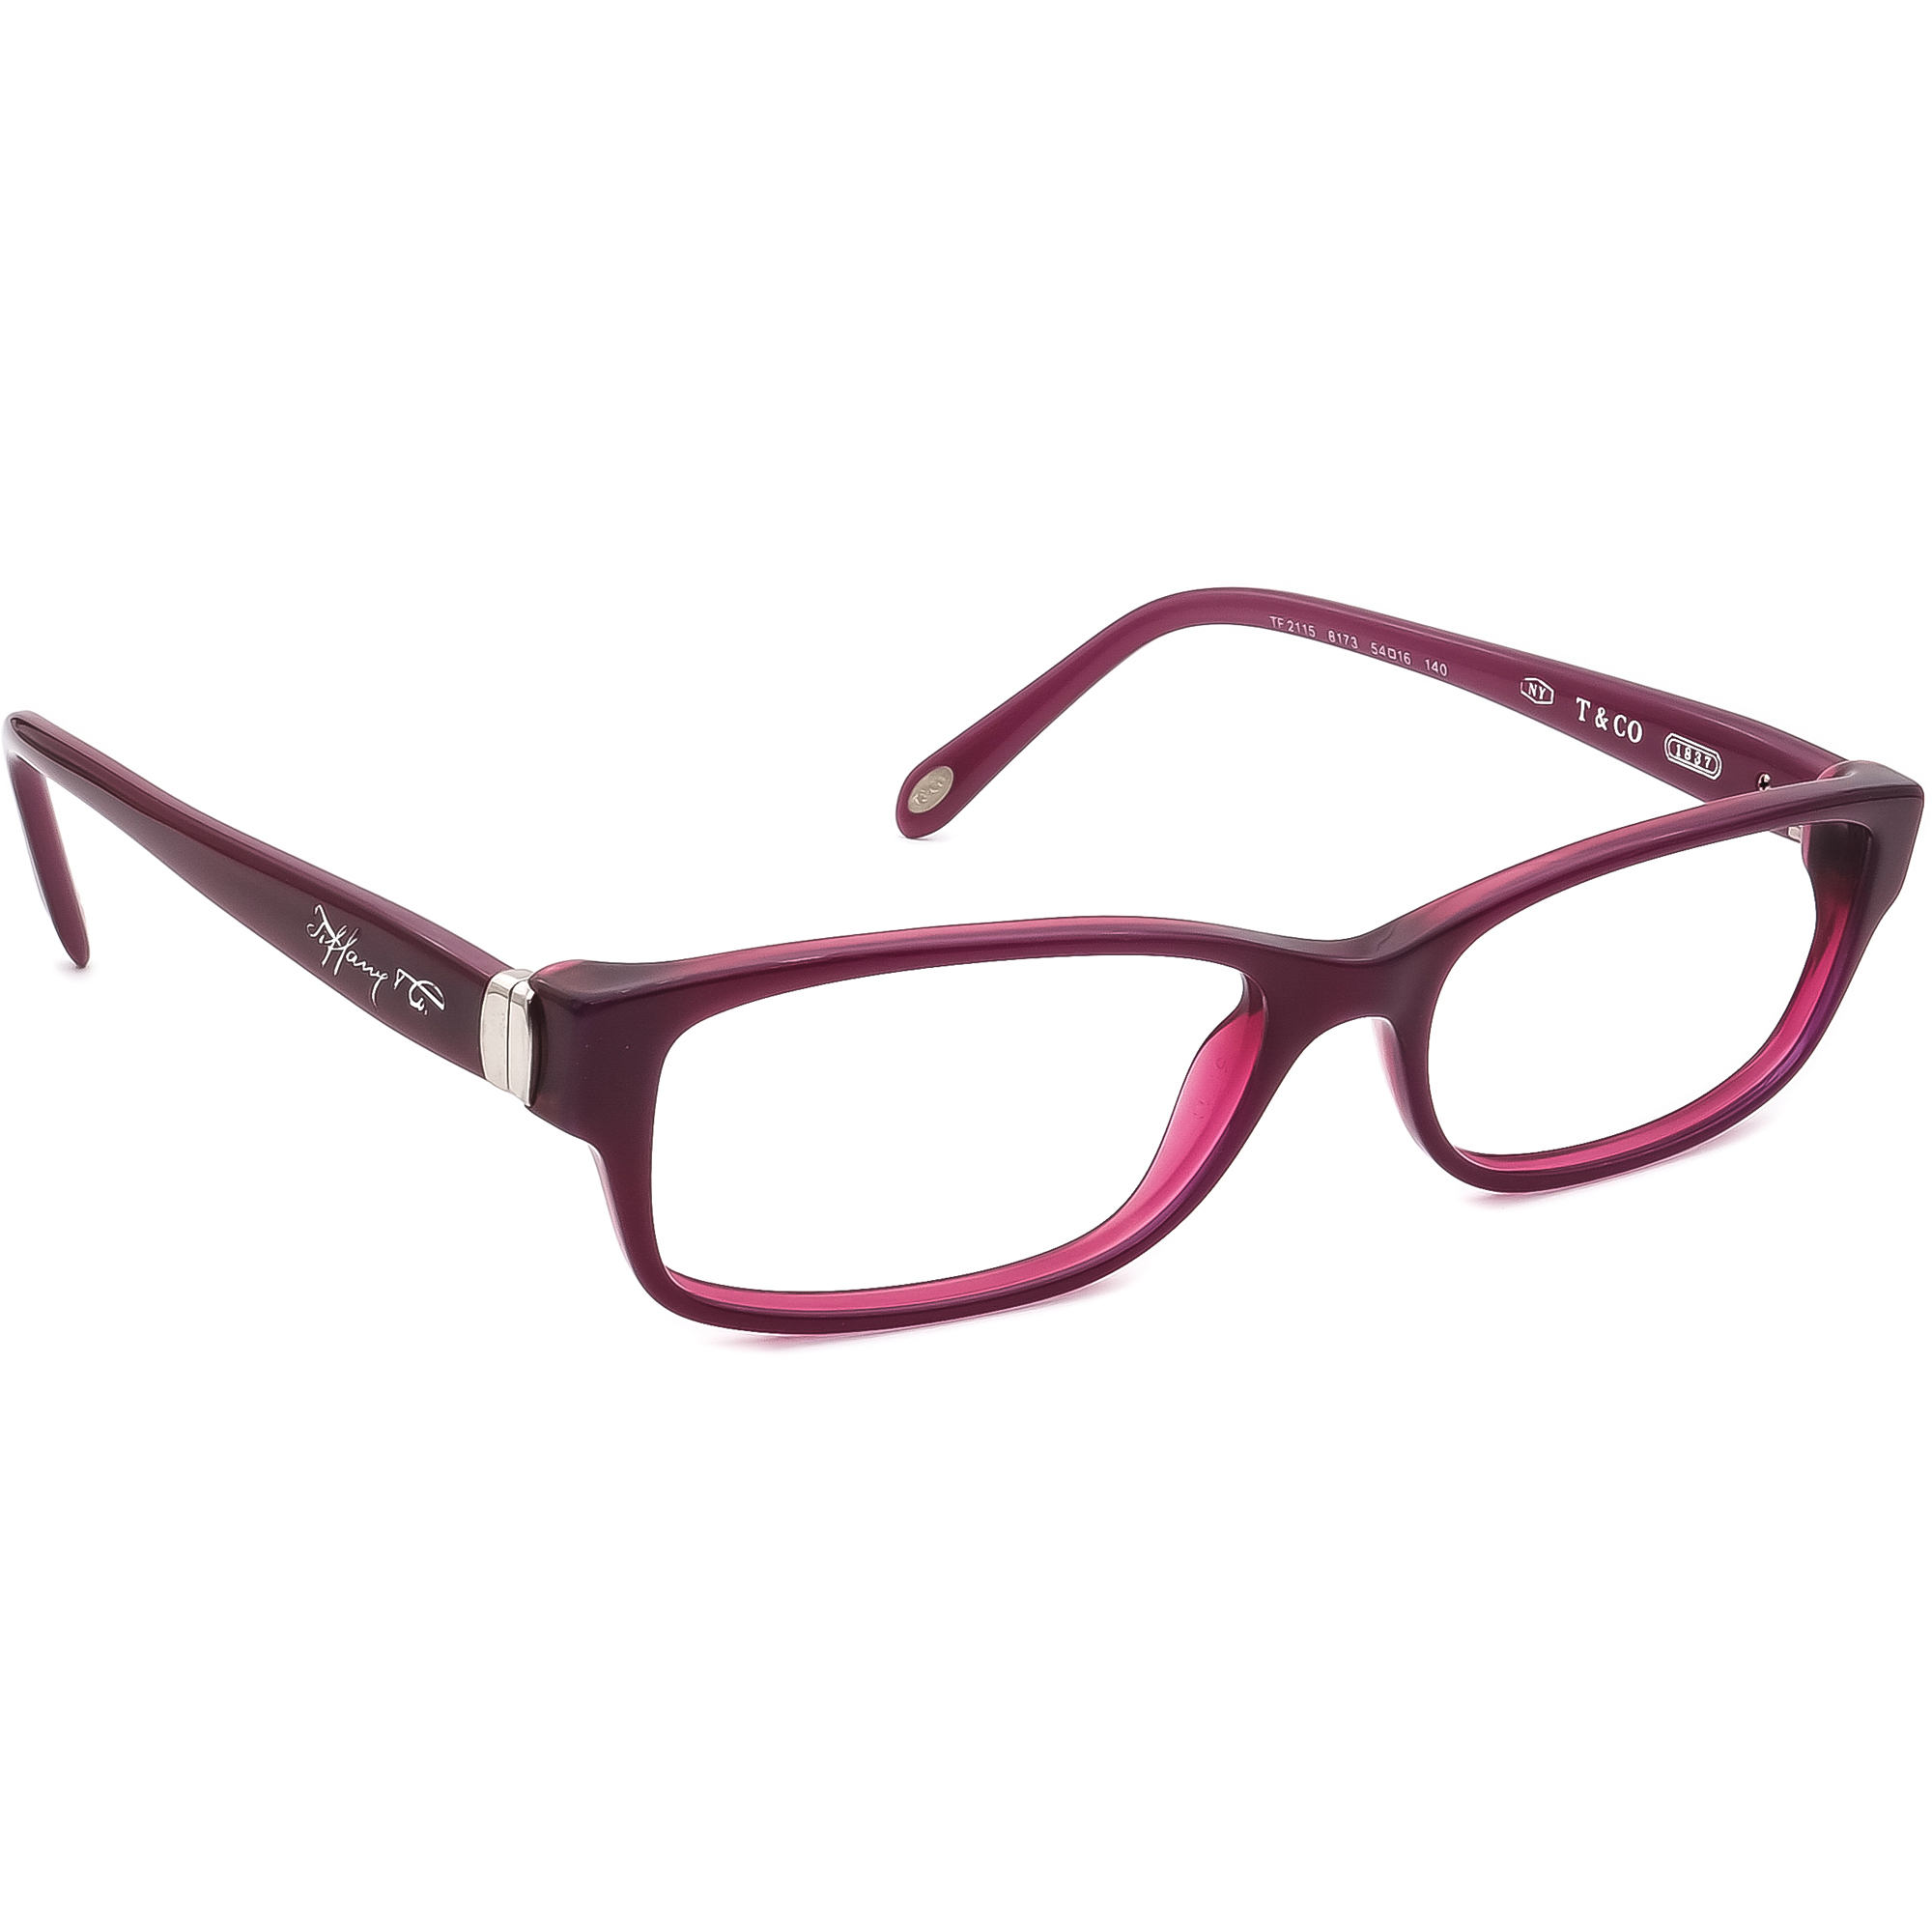 Tiffany & Co. TF 2115 8173 Eyeglasses